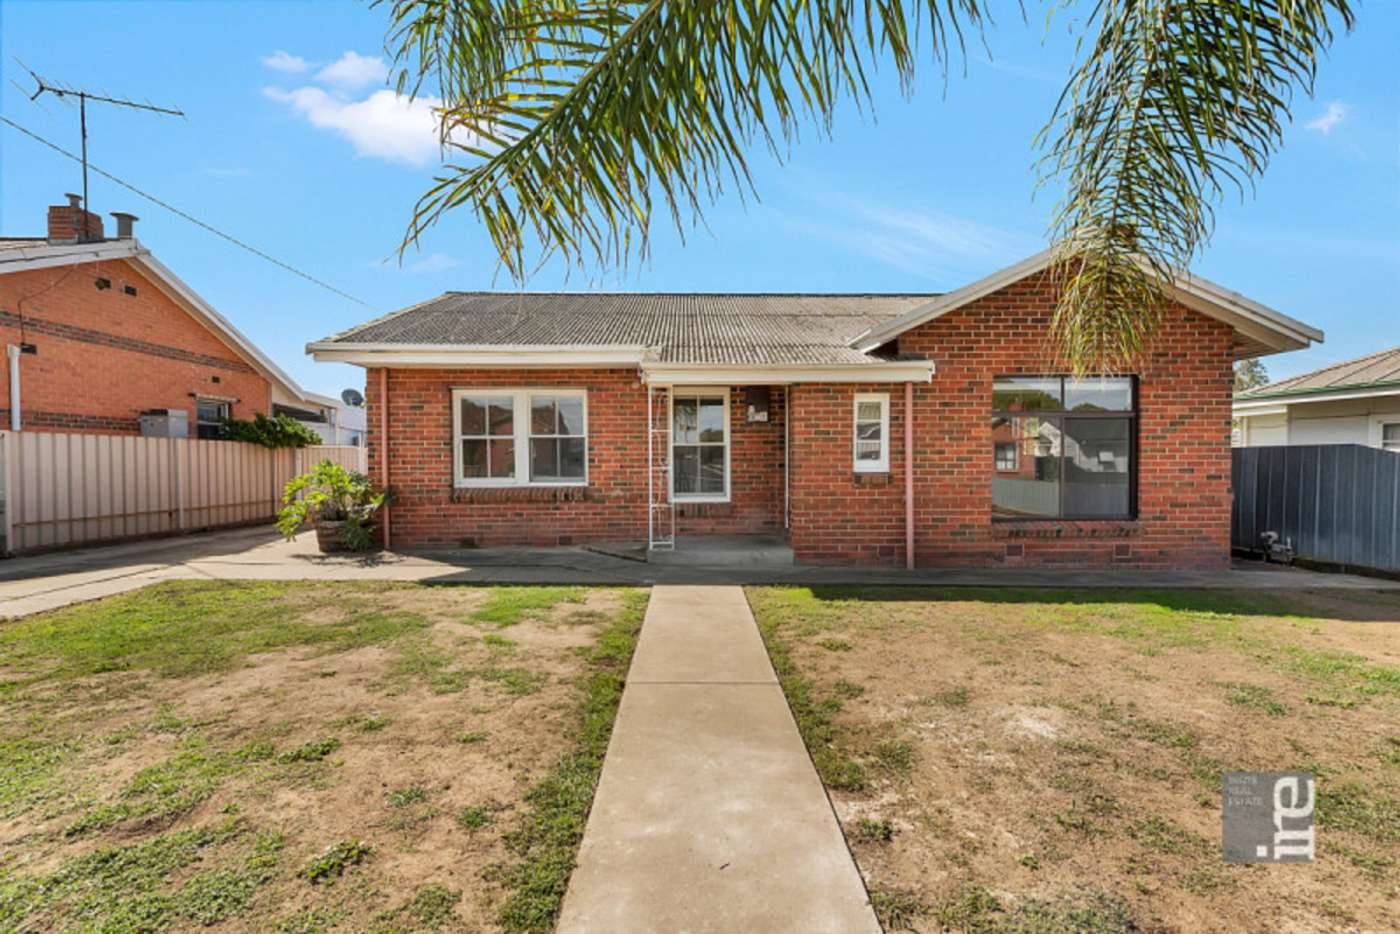 Main view of Homely house listing, 18 Smith Crescent, Wangaratta VIC 3677